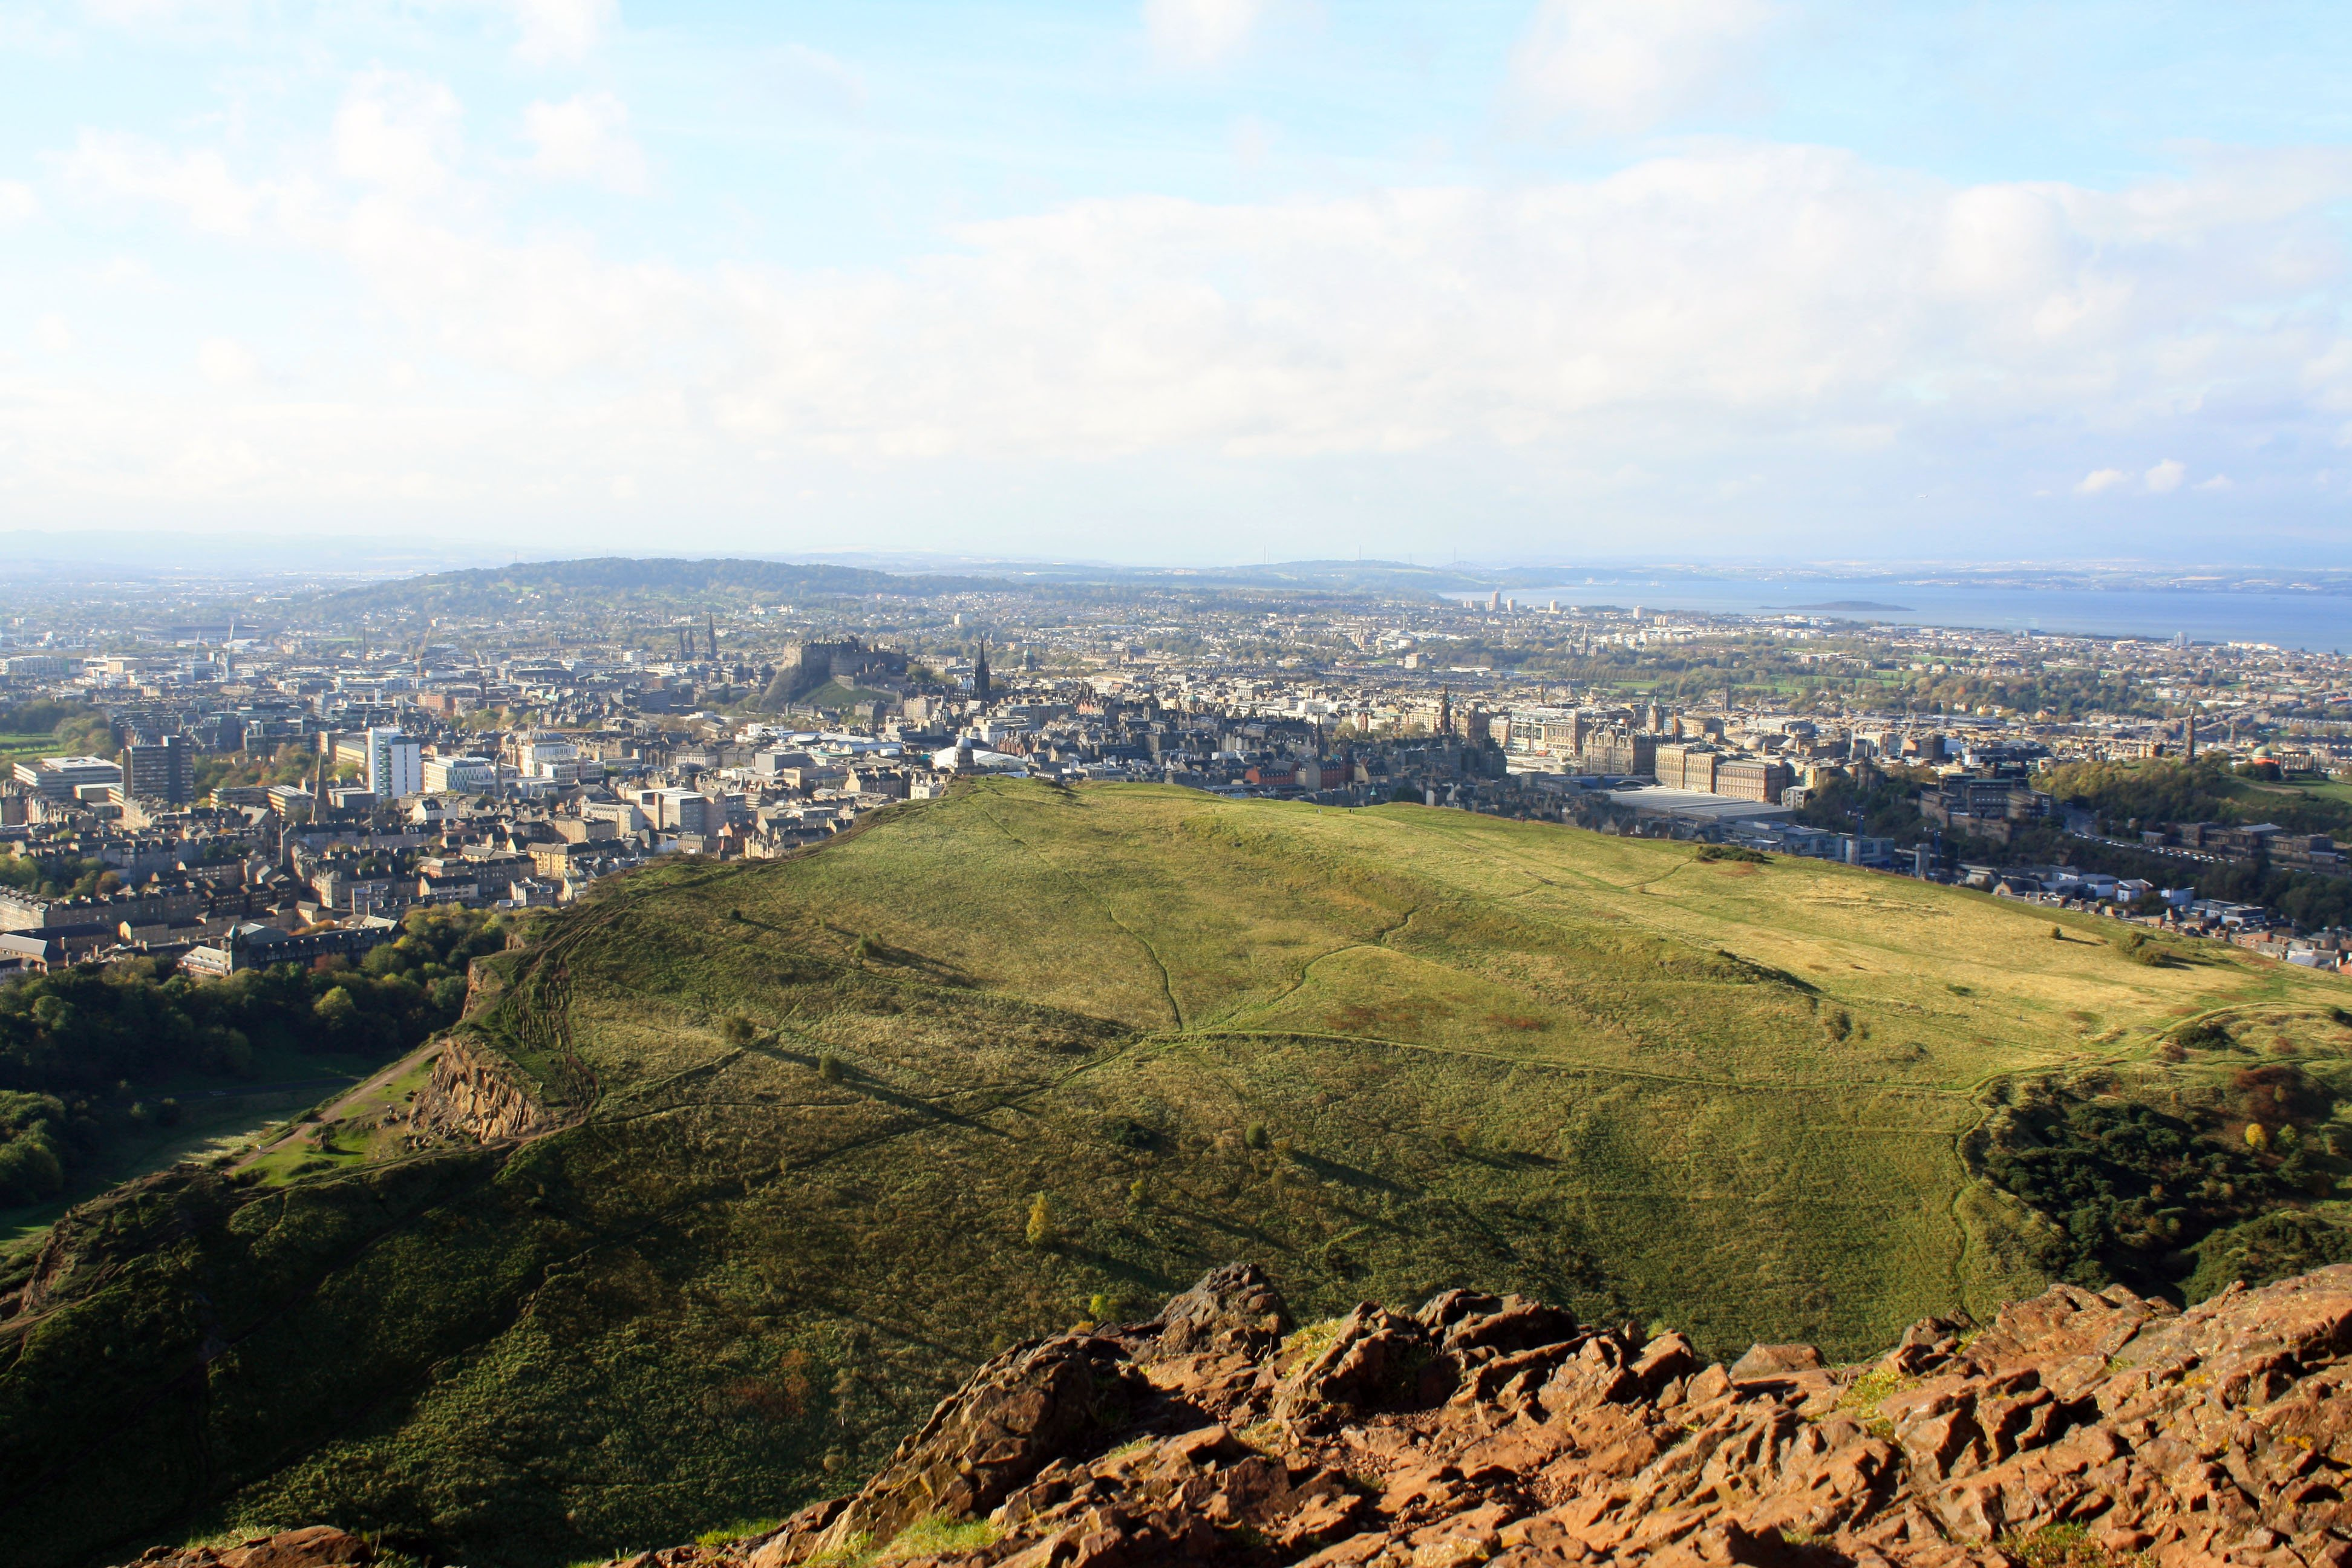 Arthur's Seat view of Edinburgh